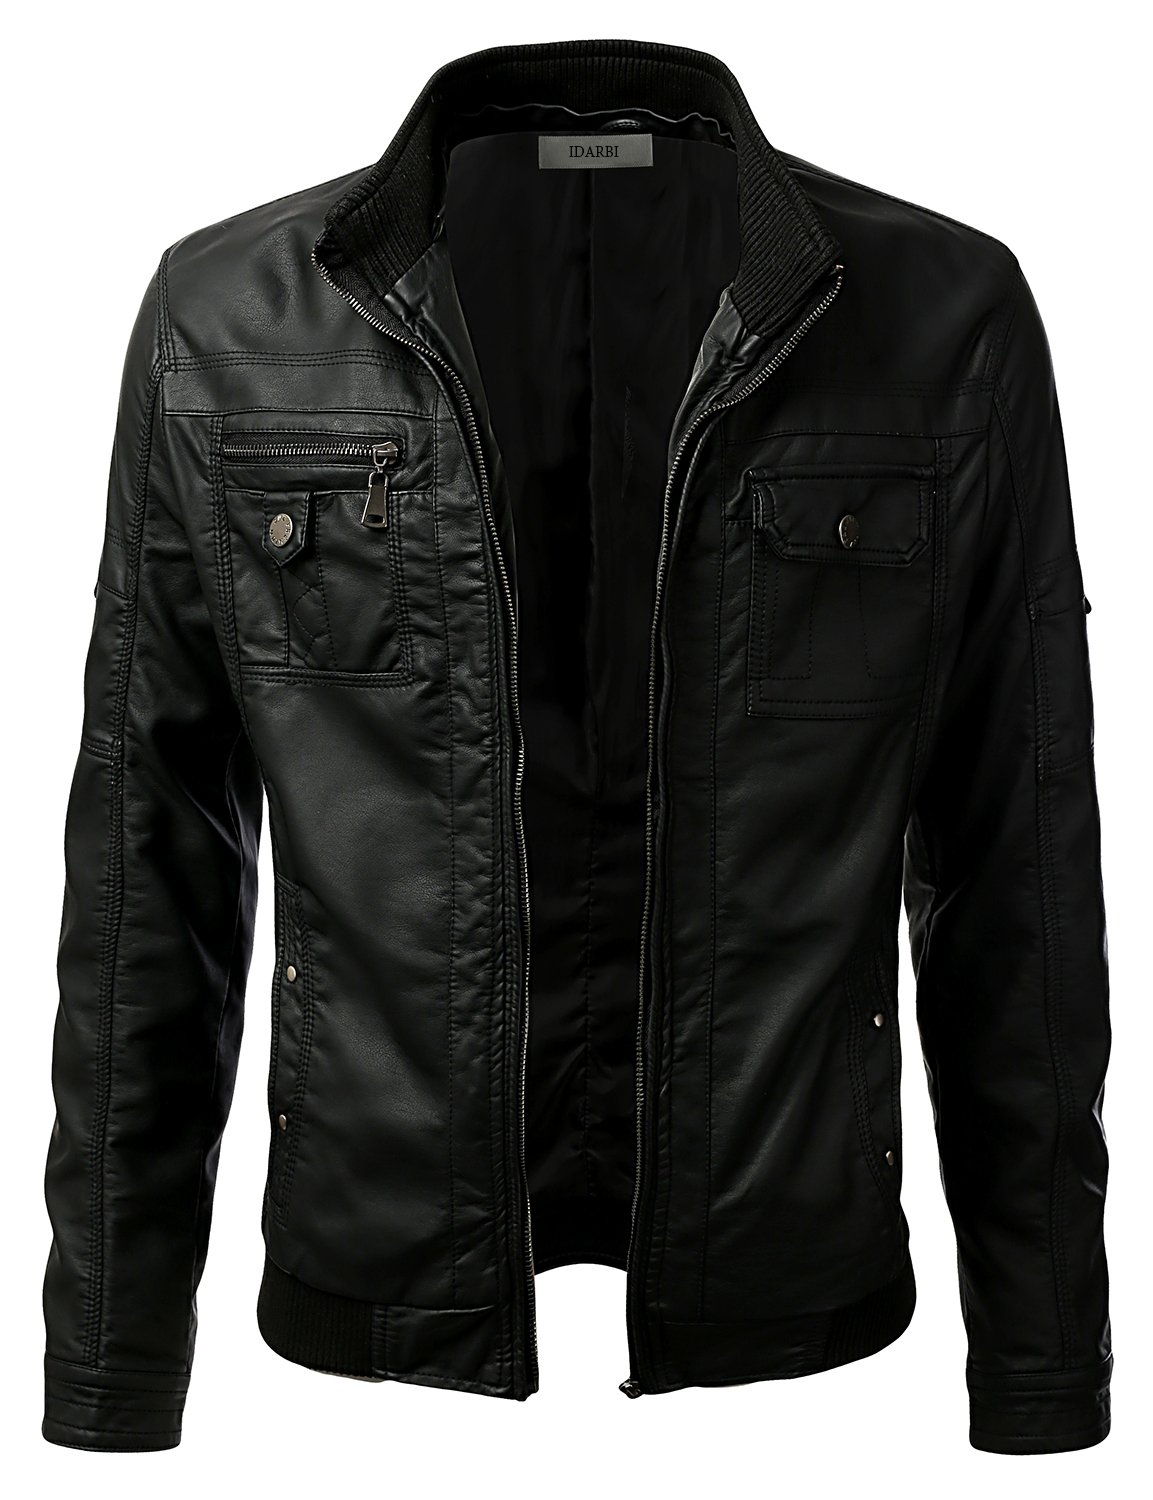 IDARBI Men¡¯s Premium PU Faux Leather Moto Biker Jacket With Detachable Hood Black M